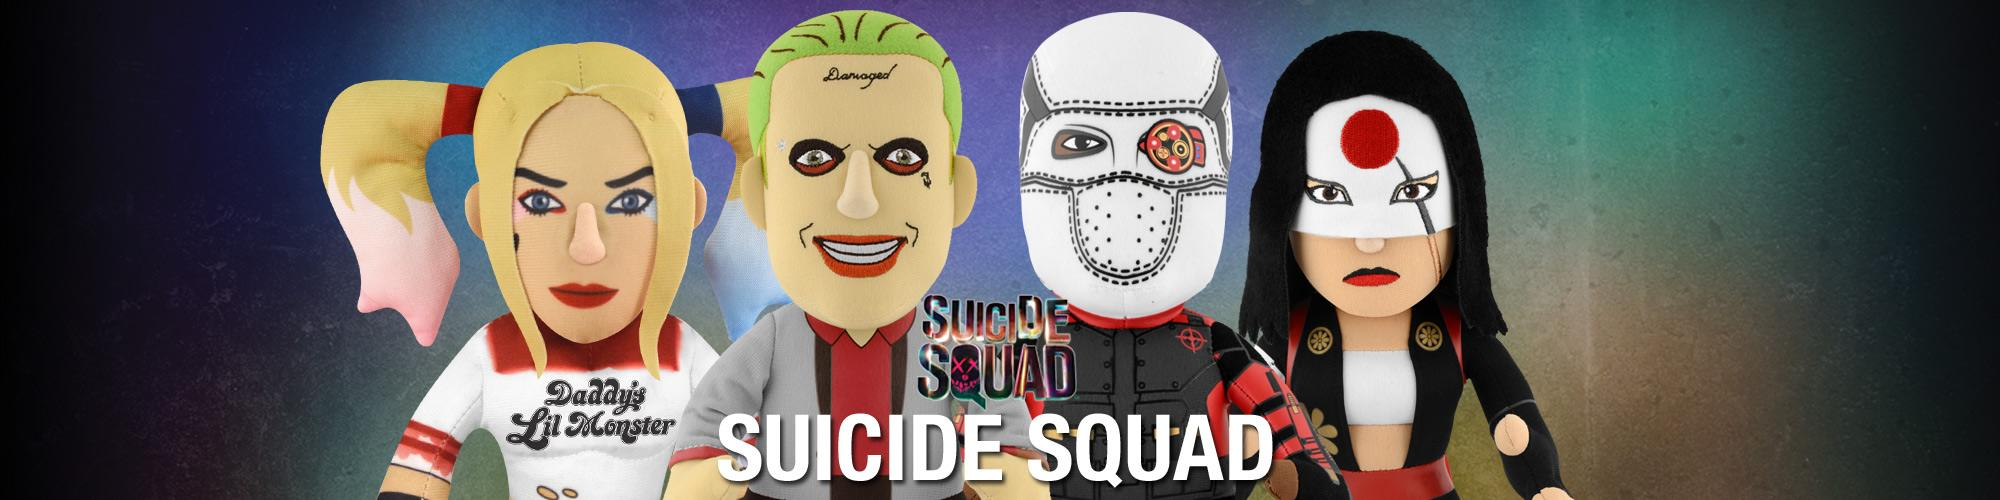 bc-suicide-squad-banner